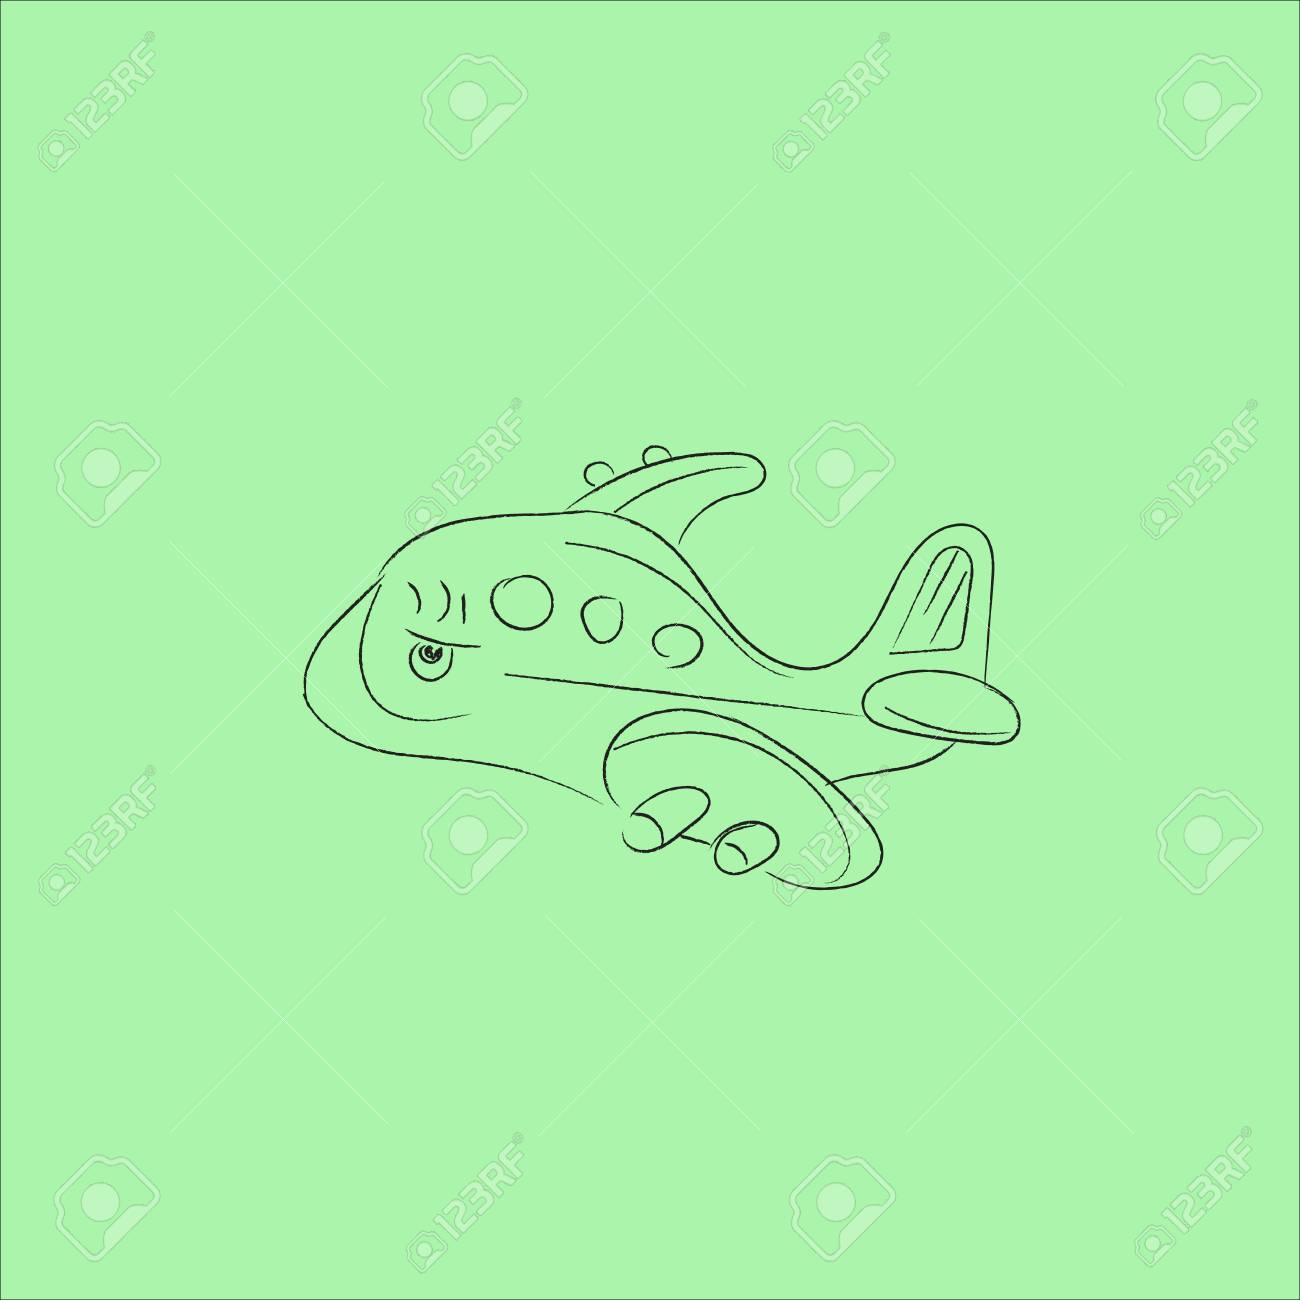 Airplane Cute Cartoon Hand Drawn Style Design In Outline